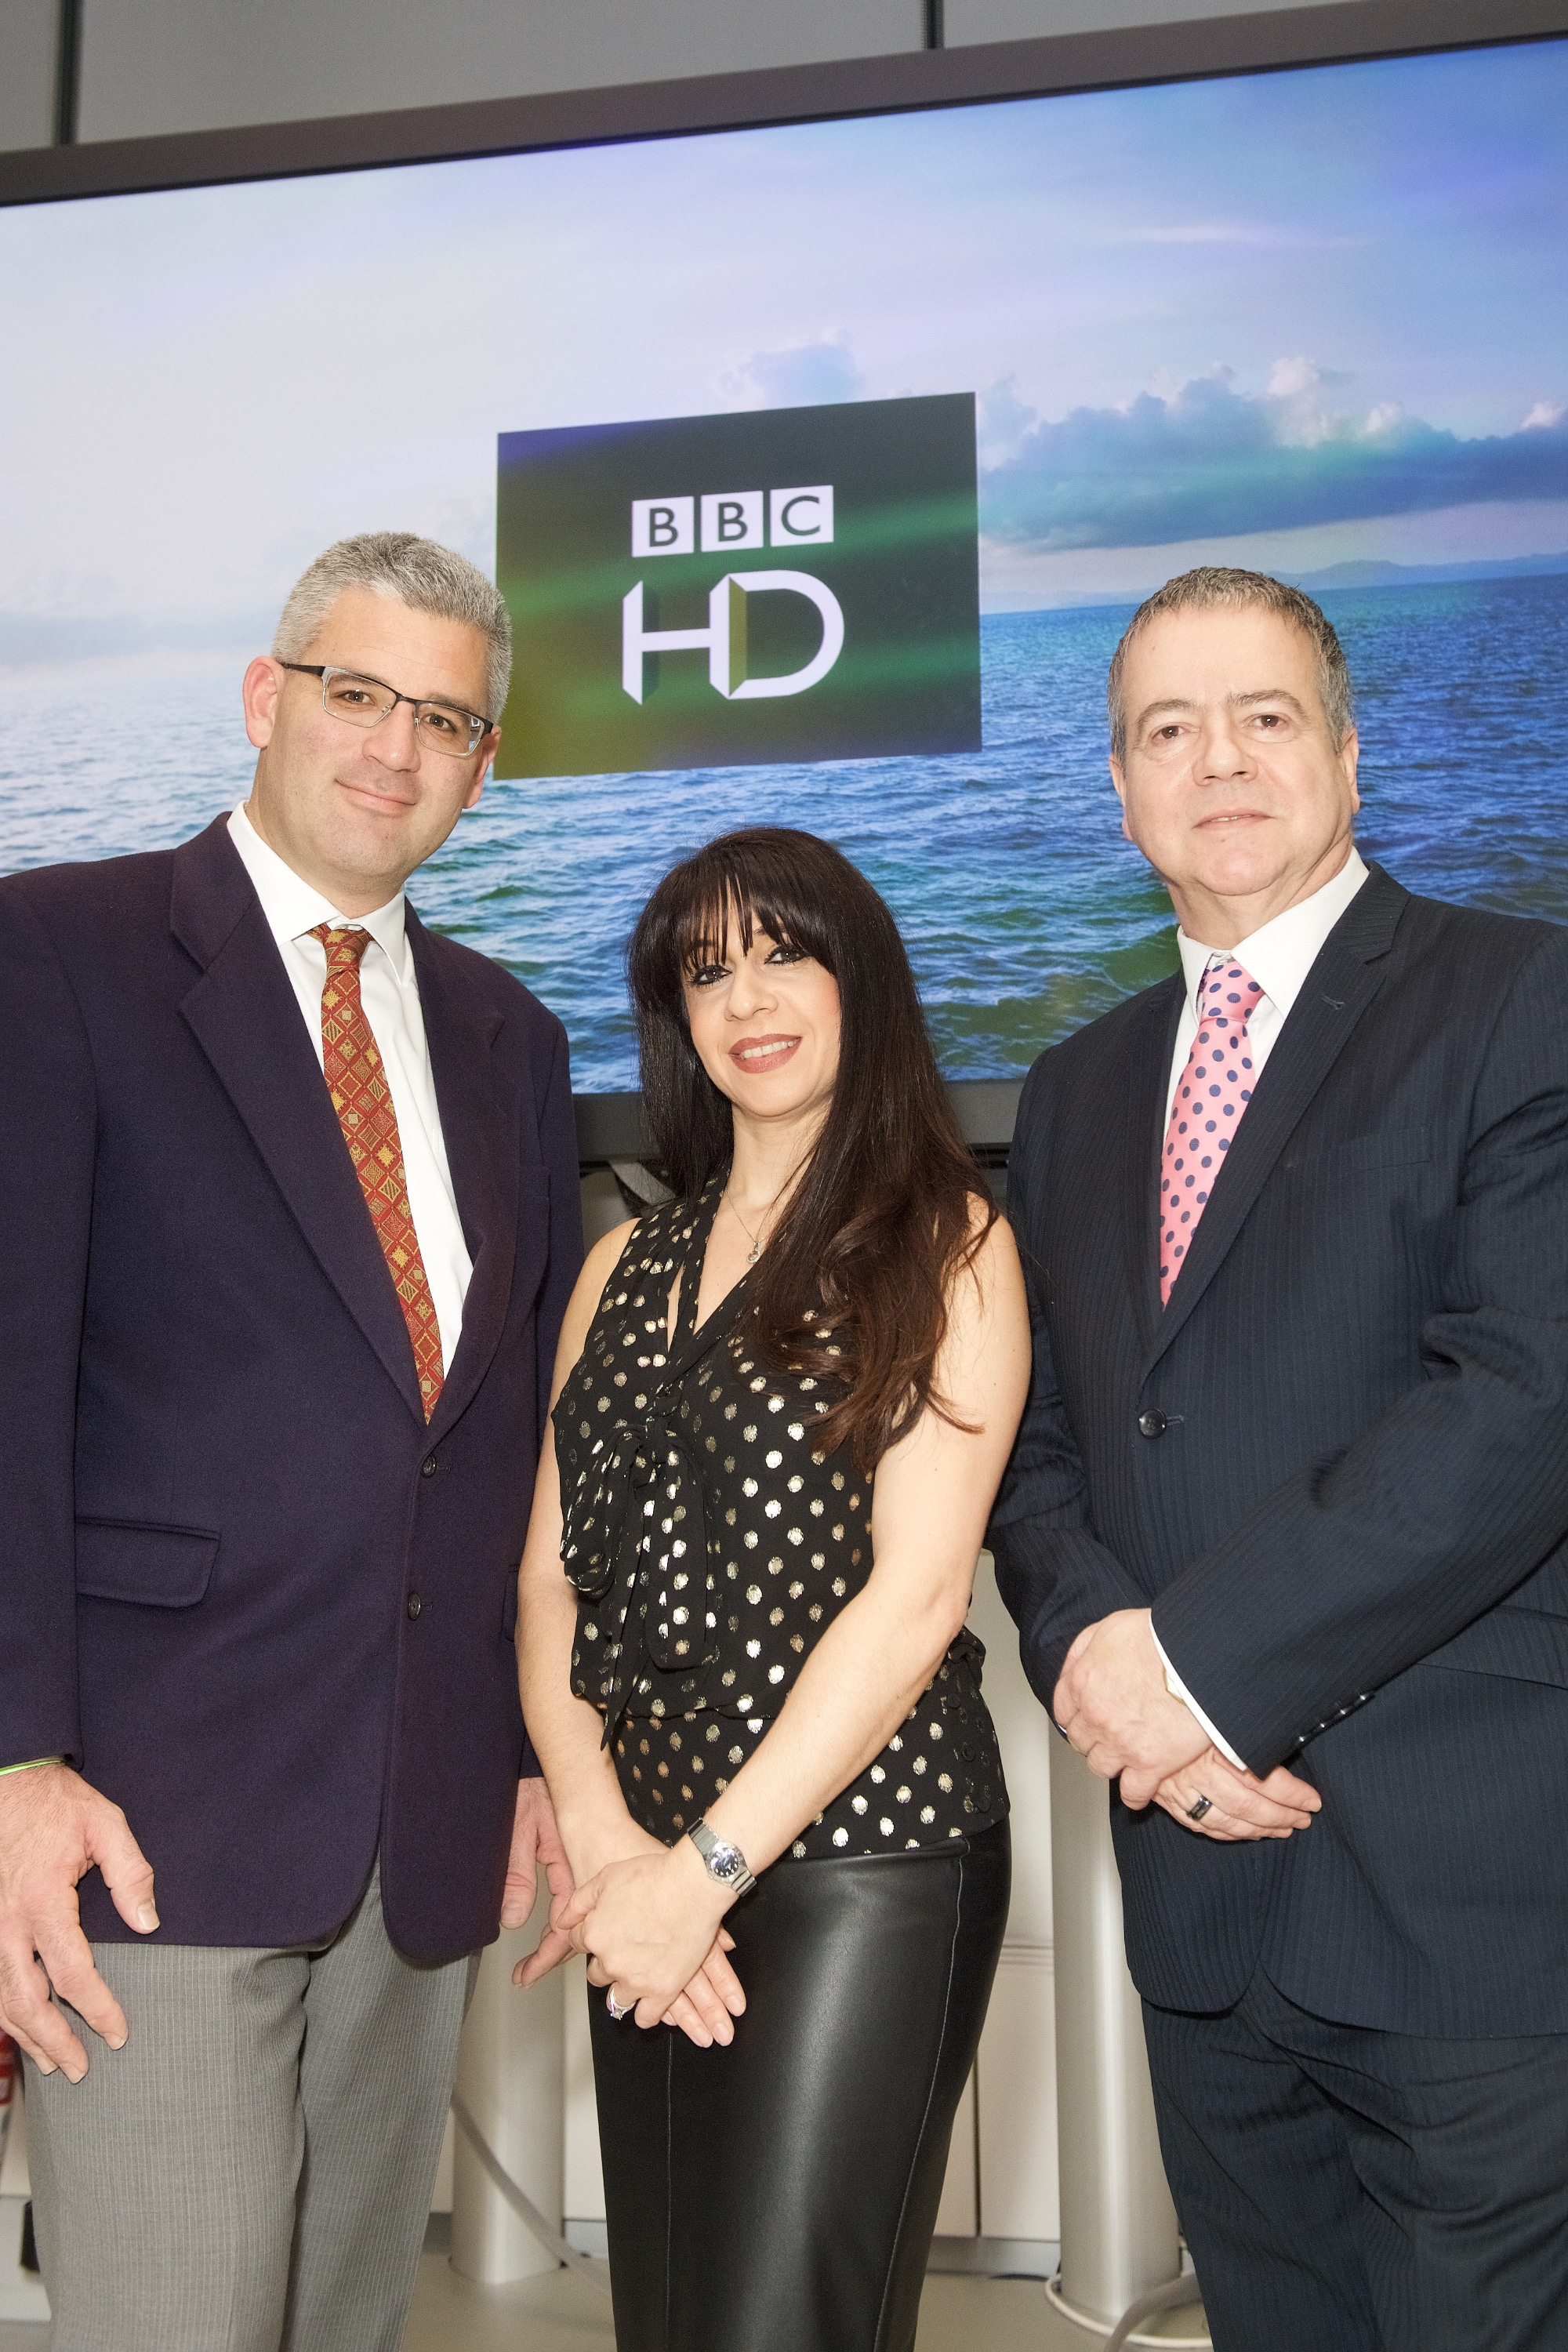 L-R Travis Peterson (VP Product Global Eagle Entertainment), Zina Neophytou (VP Out of Home BBC Worldwide) and Graham Douglas (Media & Communications Manager Carnival UK)